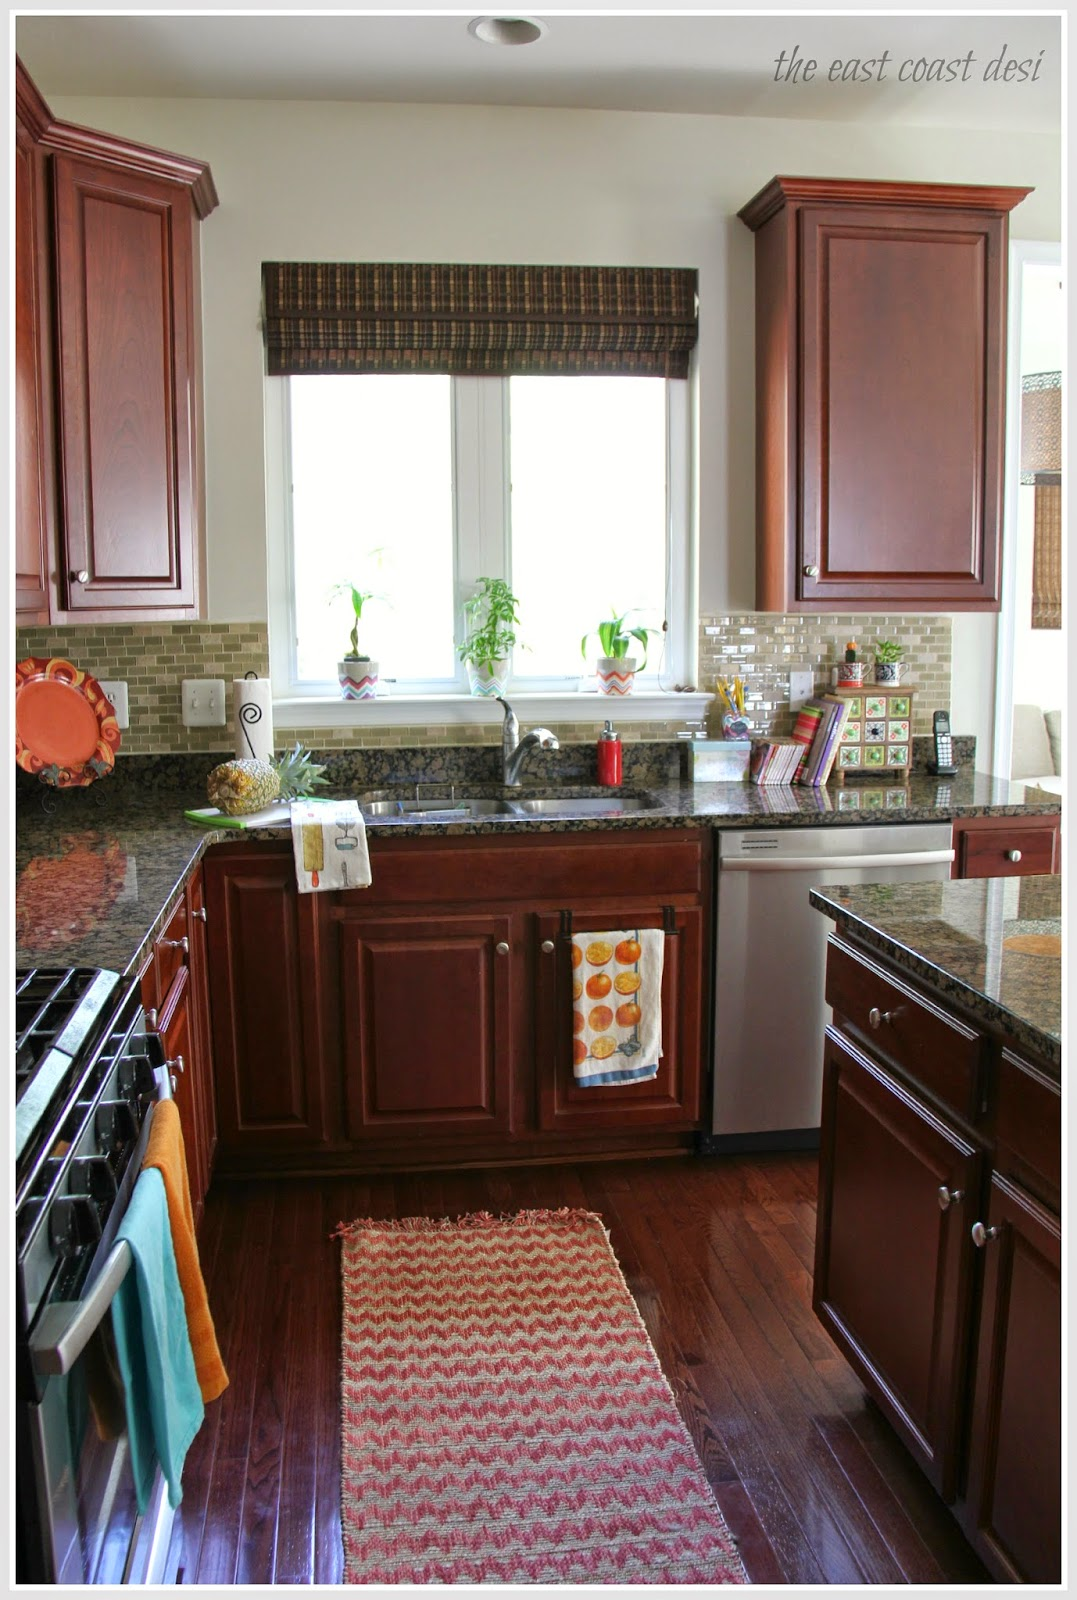 Indian kitchen design blog -  My Kitchen Tour